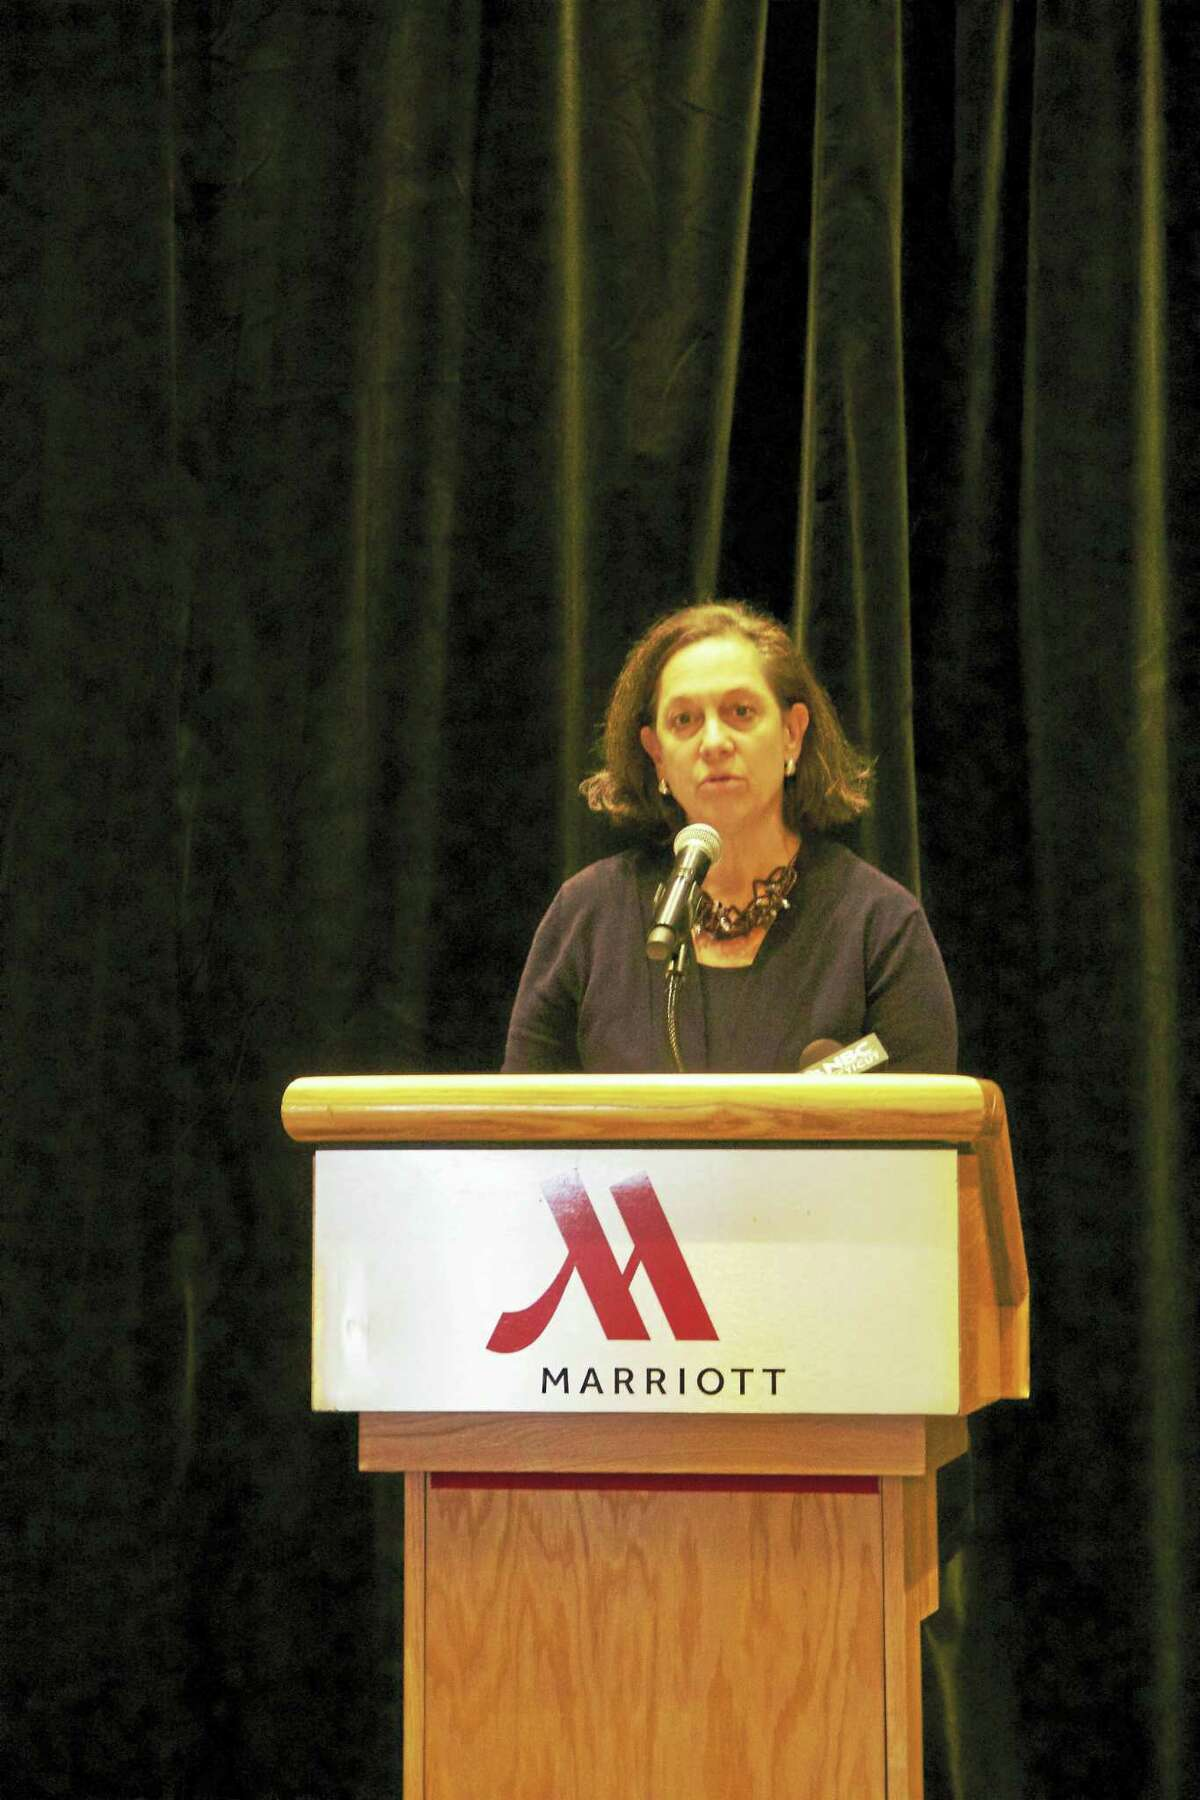 Joette Katz, commissioner of the state Department of Children and Families speaks at a press conference Thursday announcing a new public-private partnership aimed at increasing awareness about human trafficking in the state. (Anna Bisaro - New Haven Register)